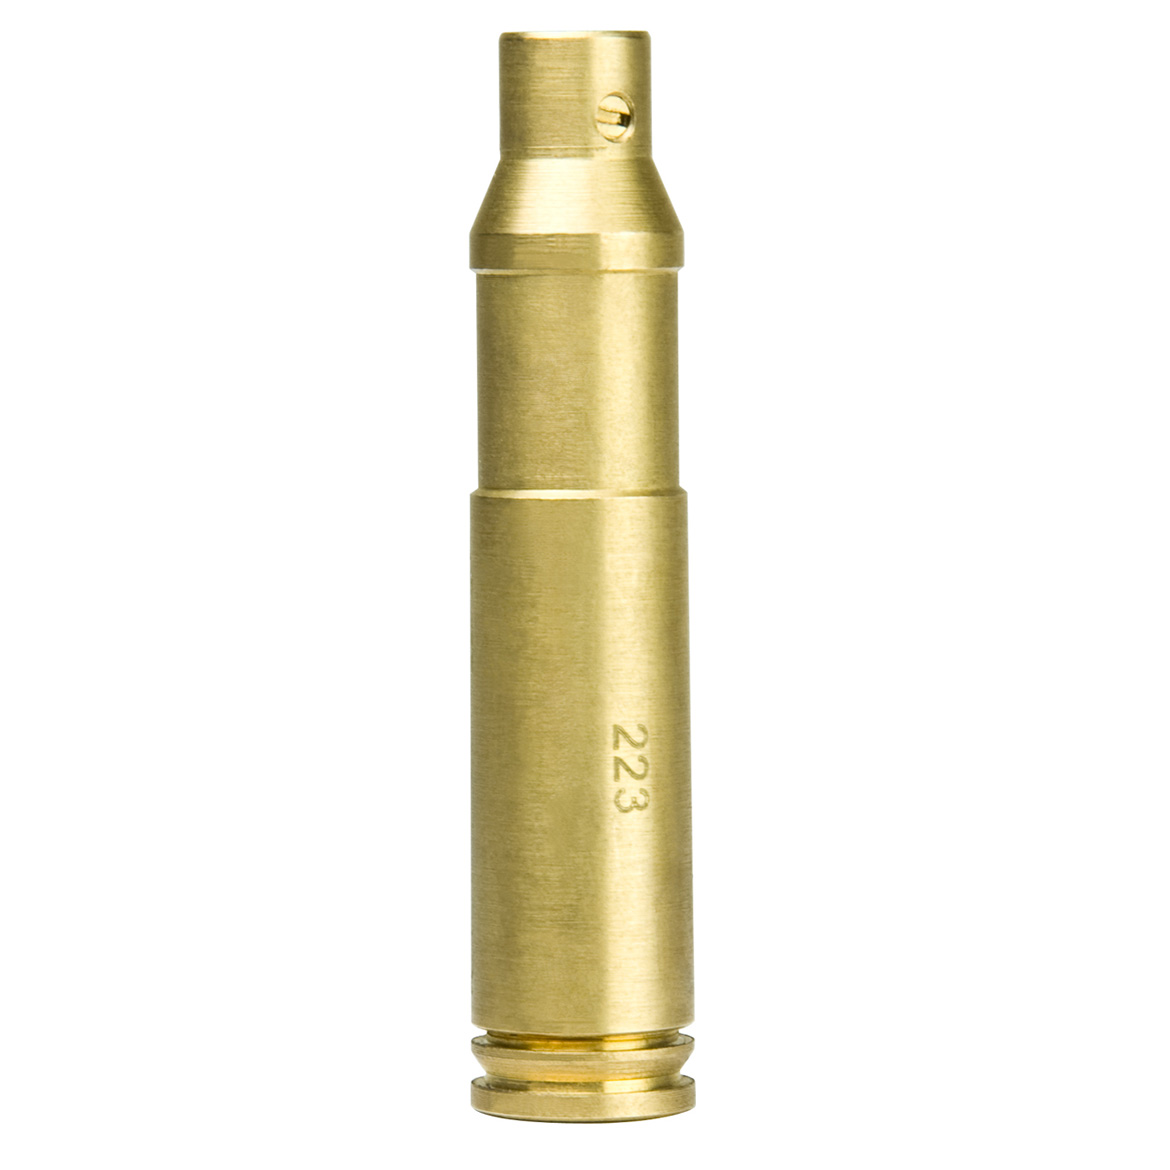 Details about NcStar TLZ223  223 Remington Brass Cartridge Red Laser Bore  Sighter